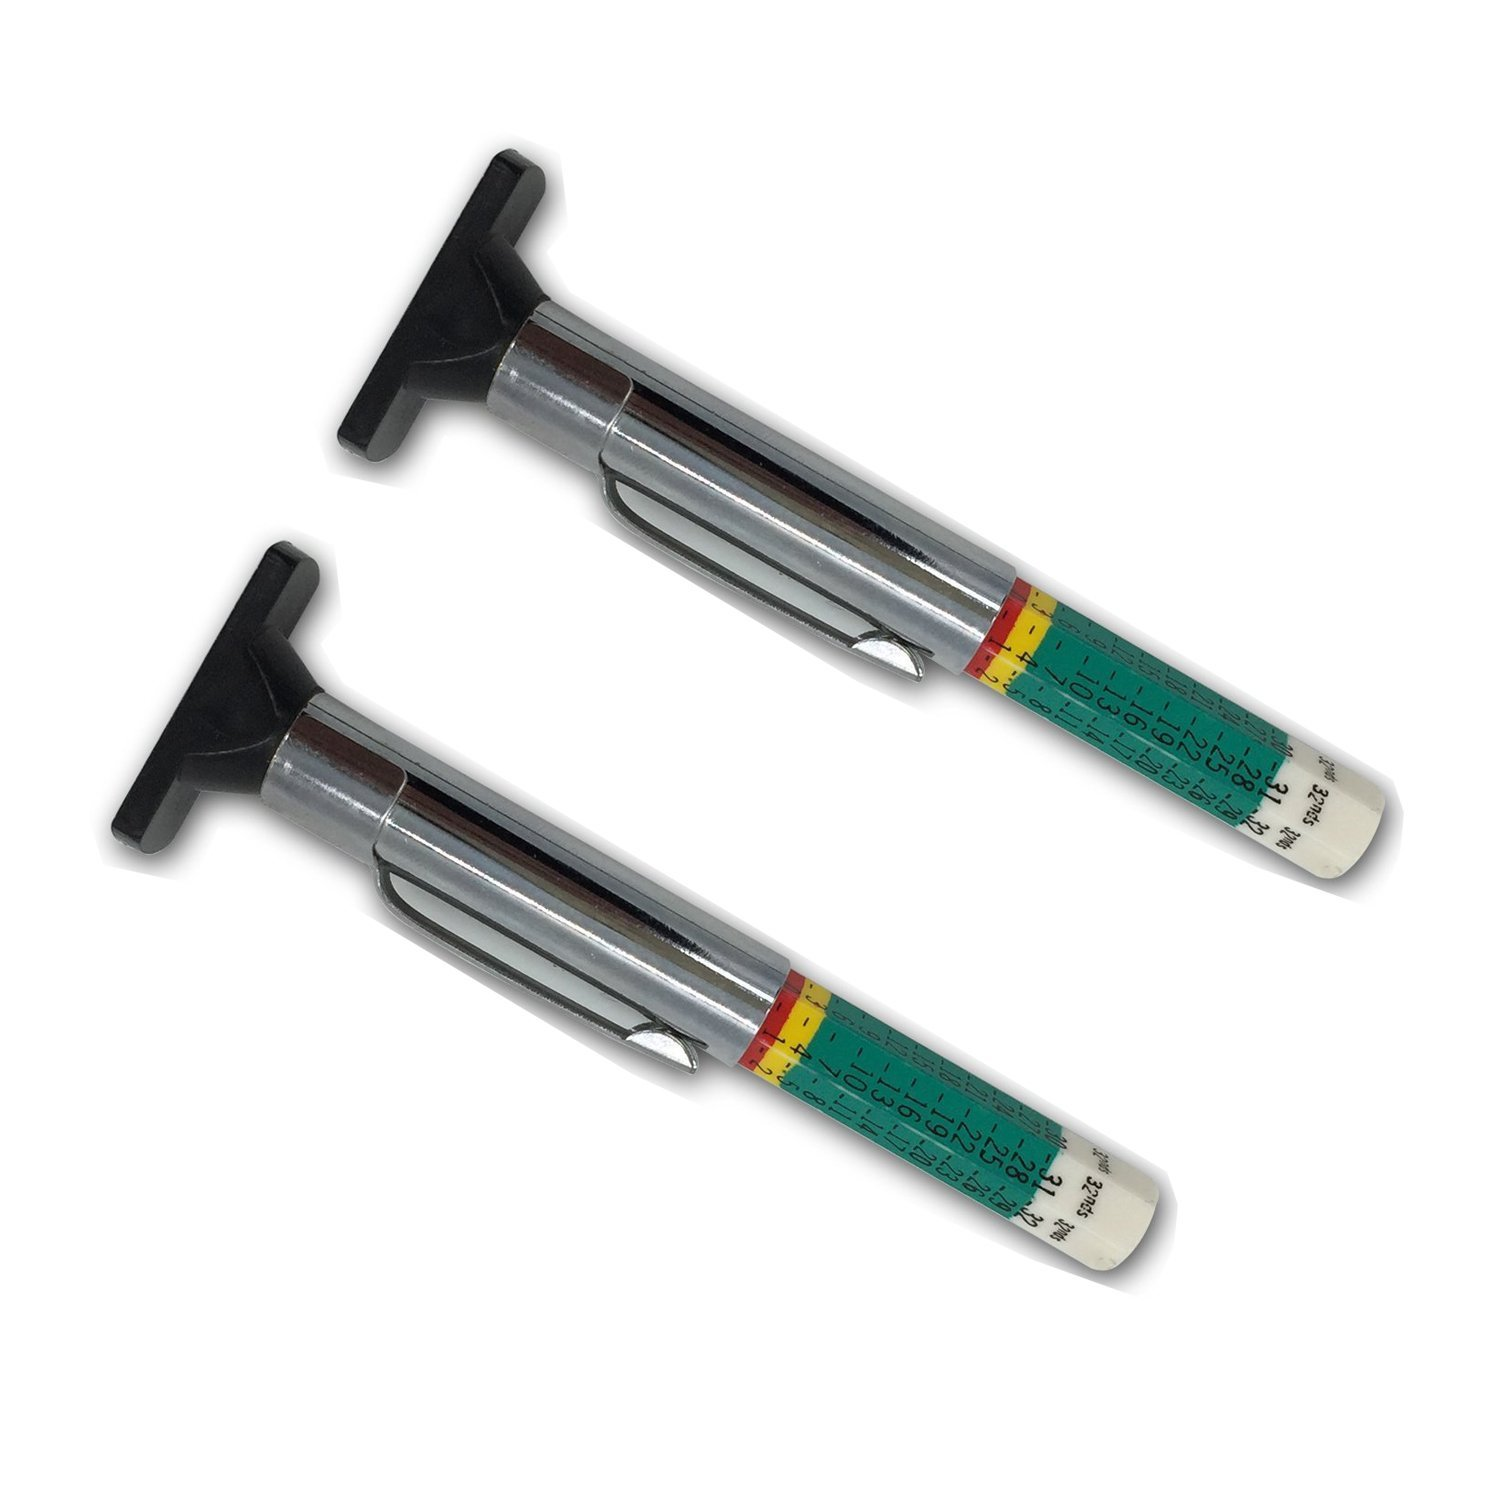 GODESON 88702 Smart Color Coded Tire Tread Depth Gauge